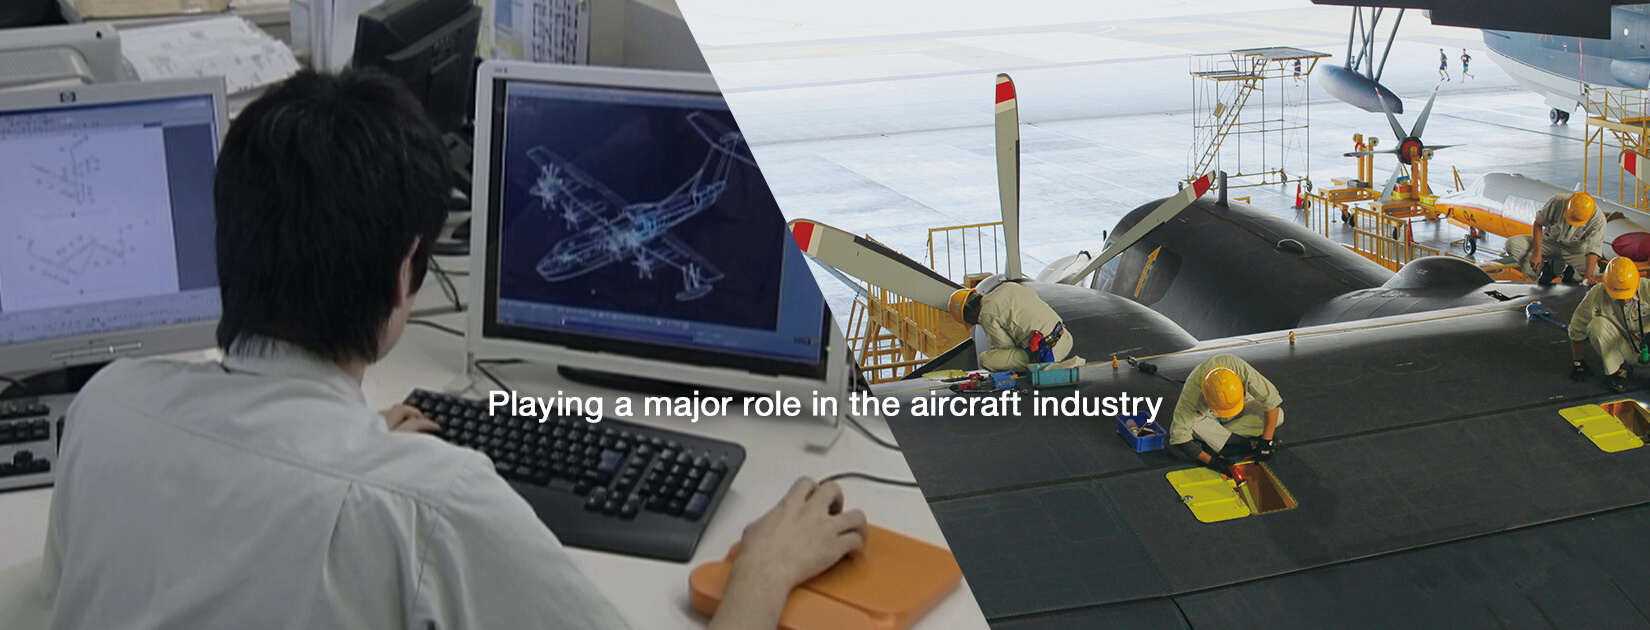 Playing a major role in the aircraft industry